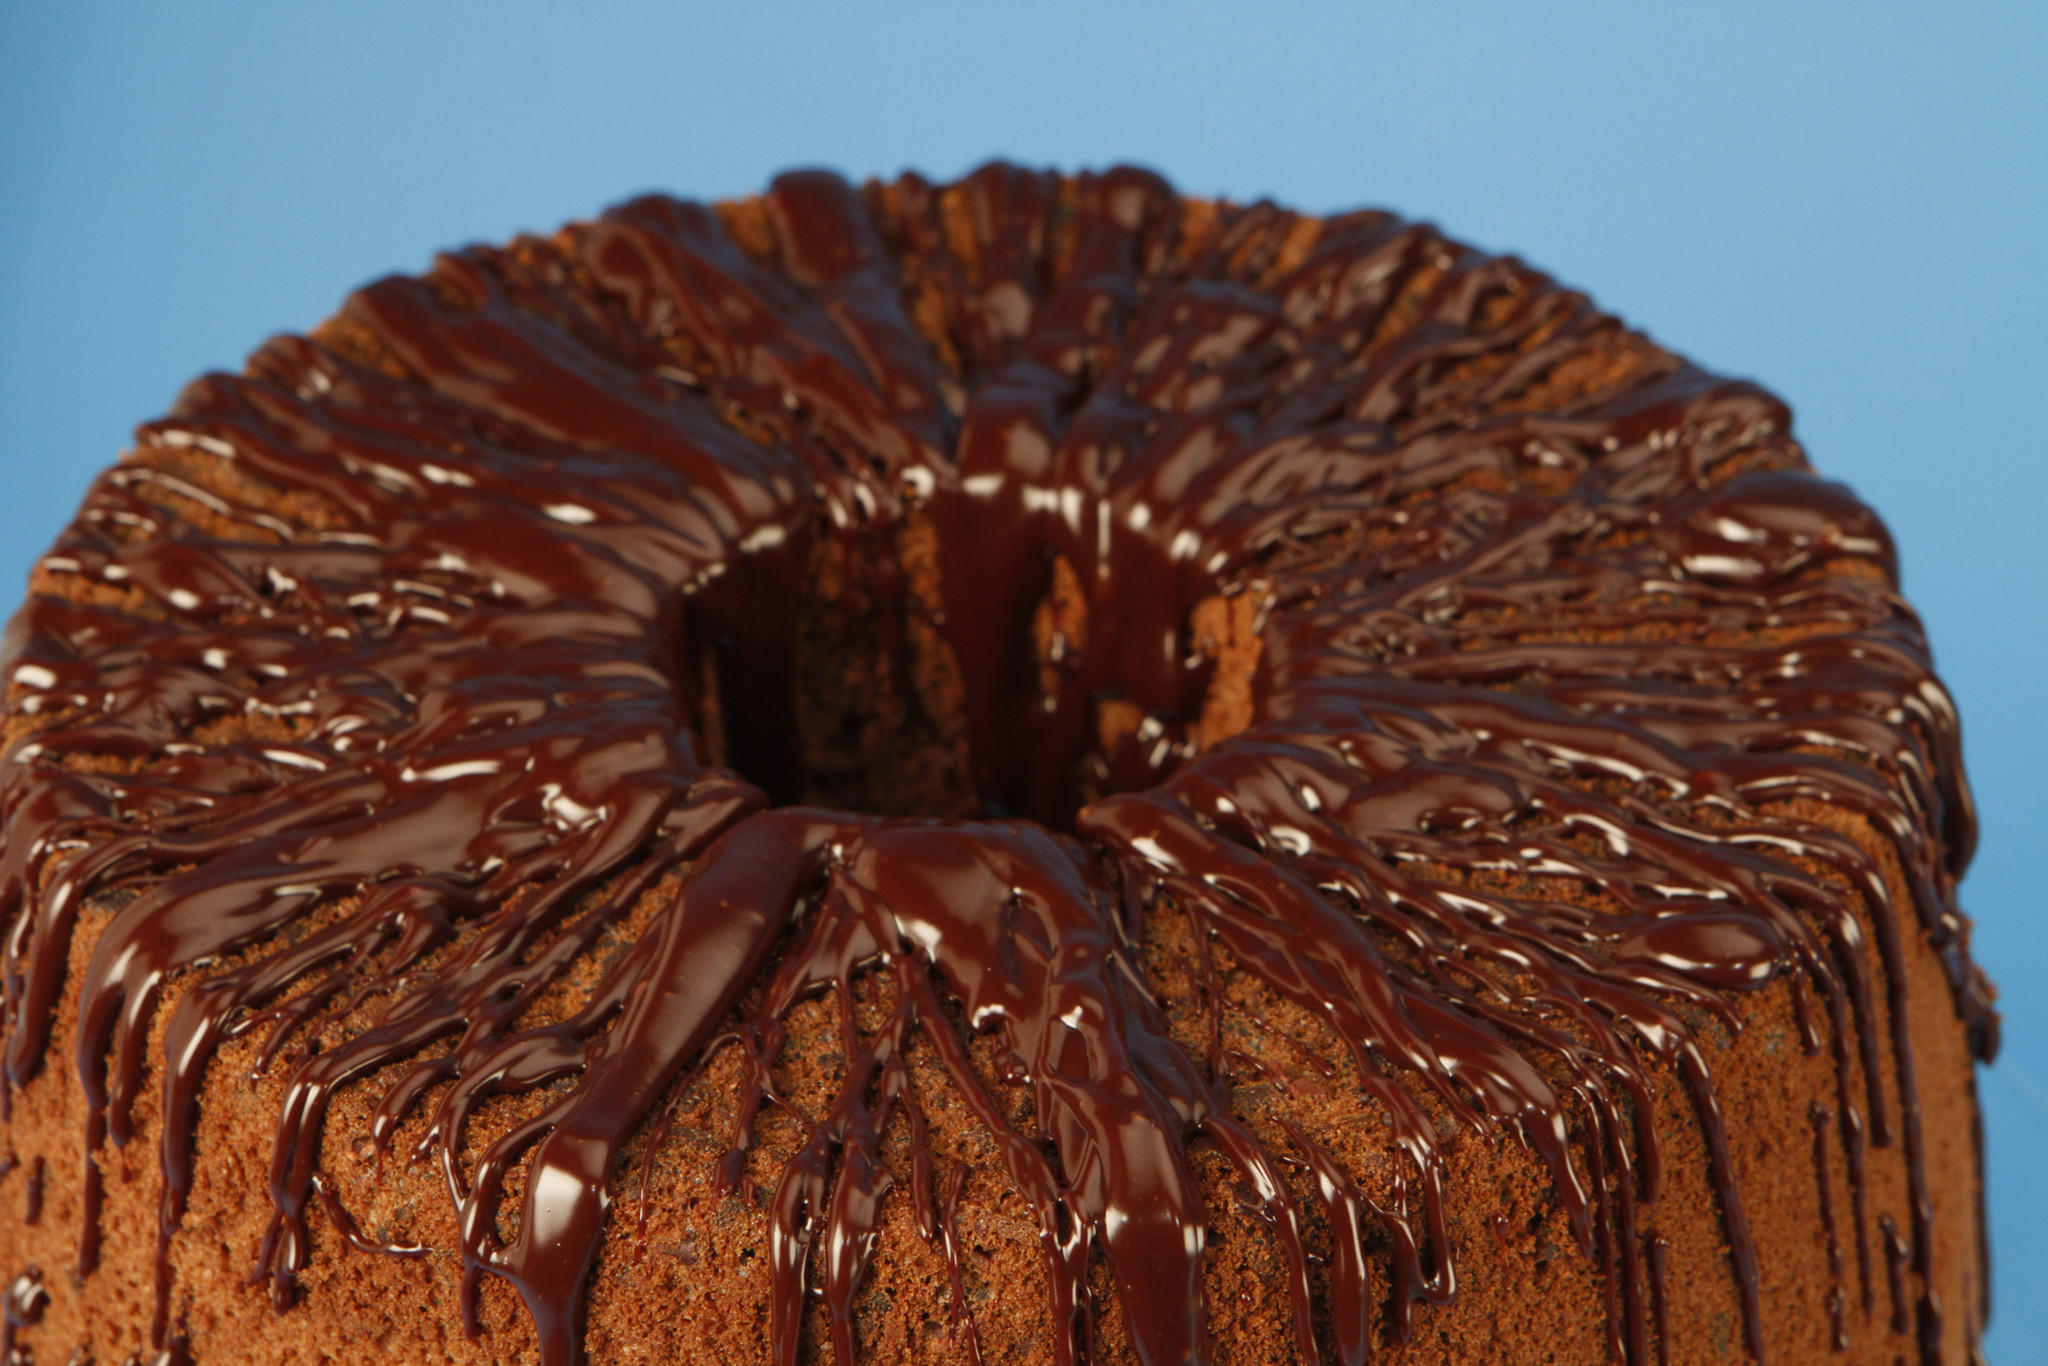 Chocolate chiffon cake with chocolate glaze